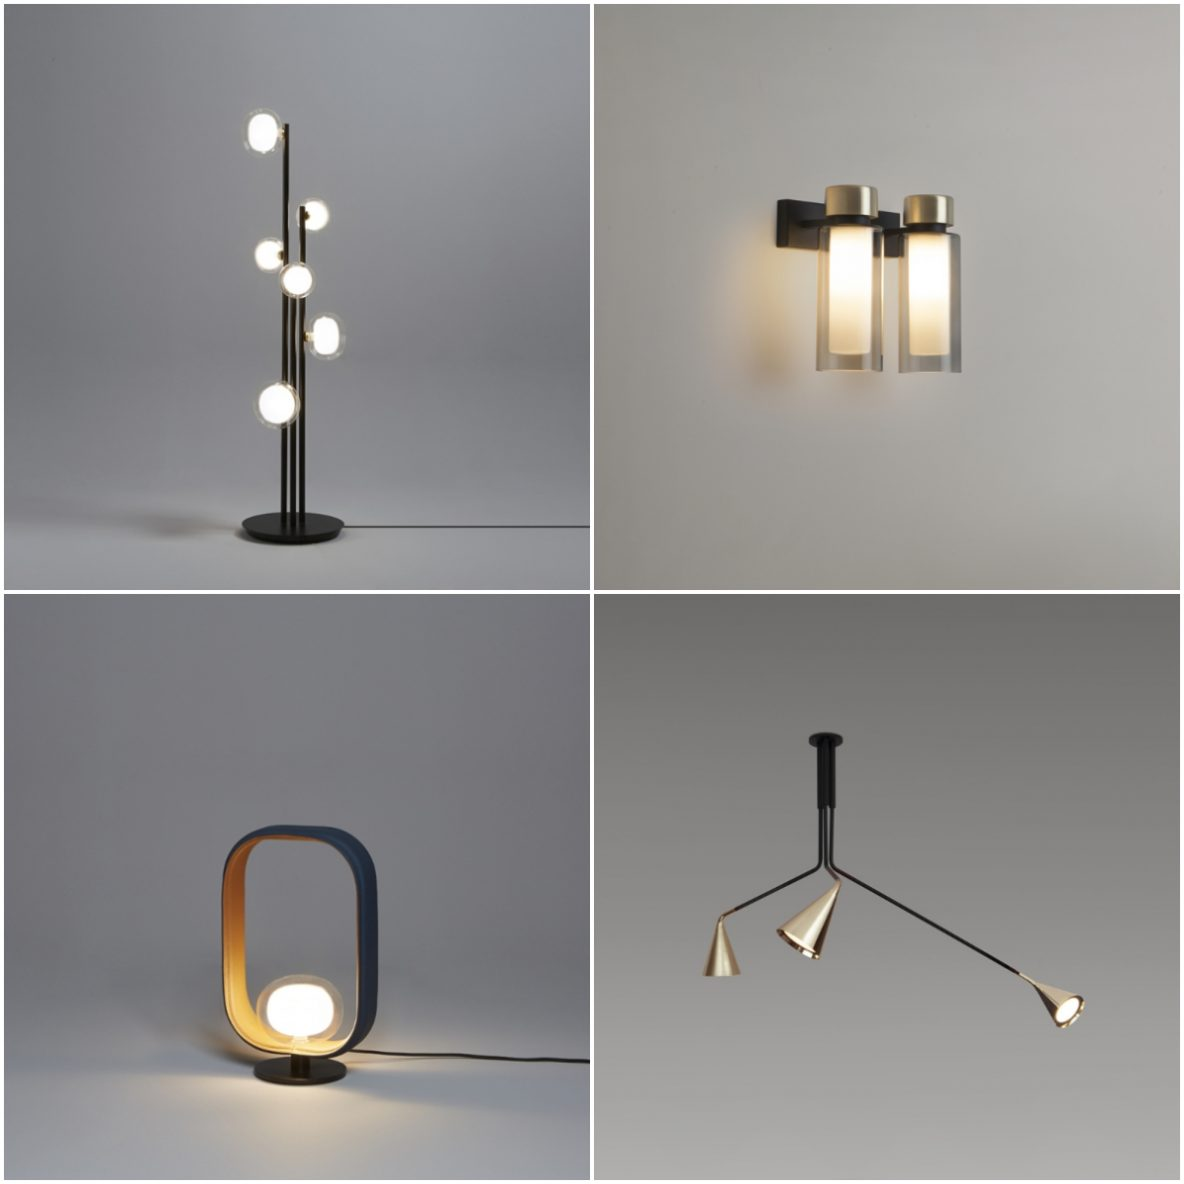 Tooy - Lighting Design srl